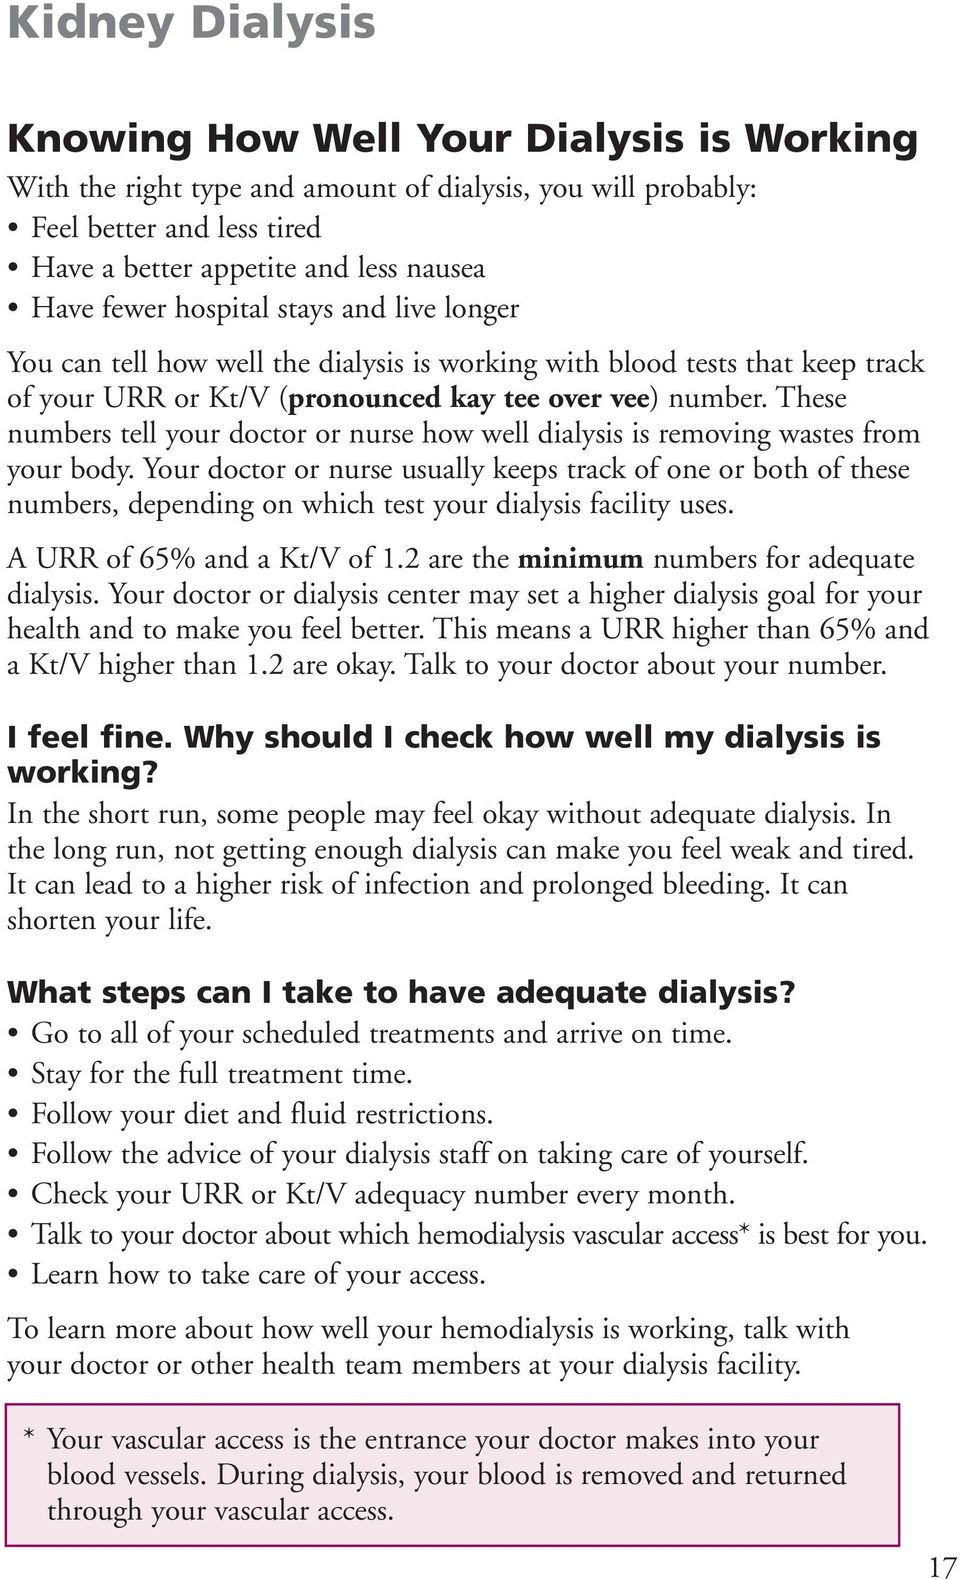 These numbers tell your doctor or nurse how well dialysis is removing wastes from your body.